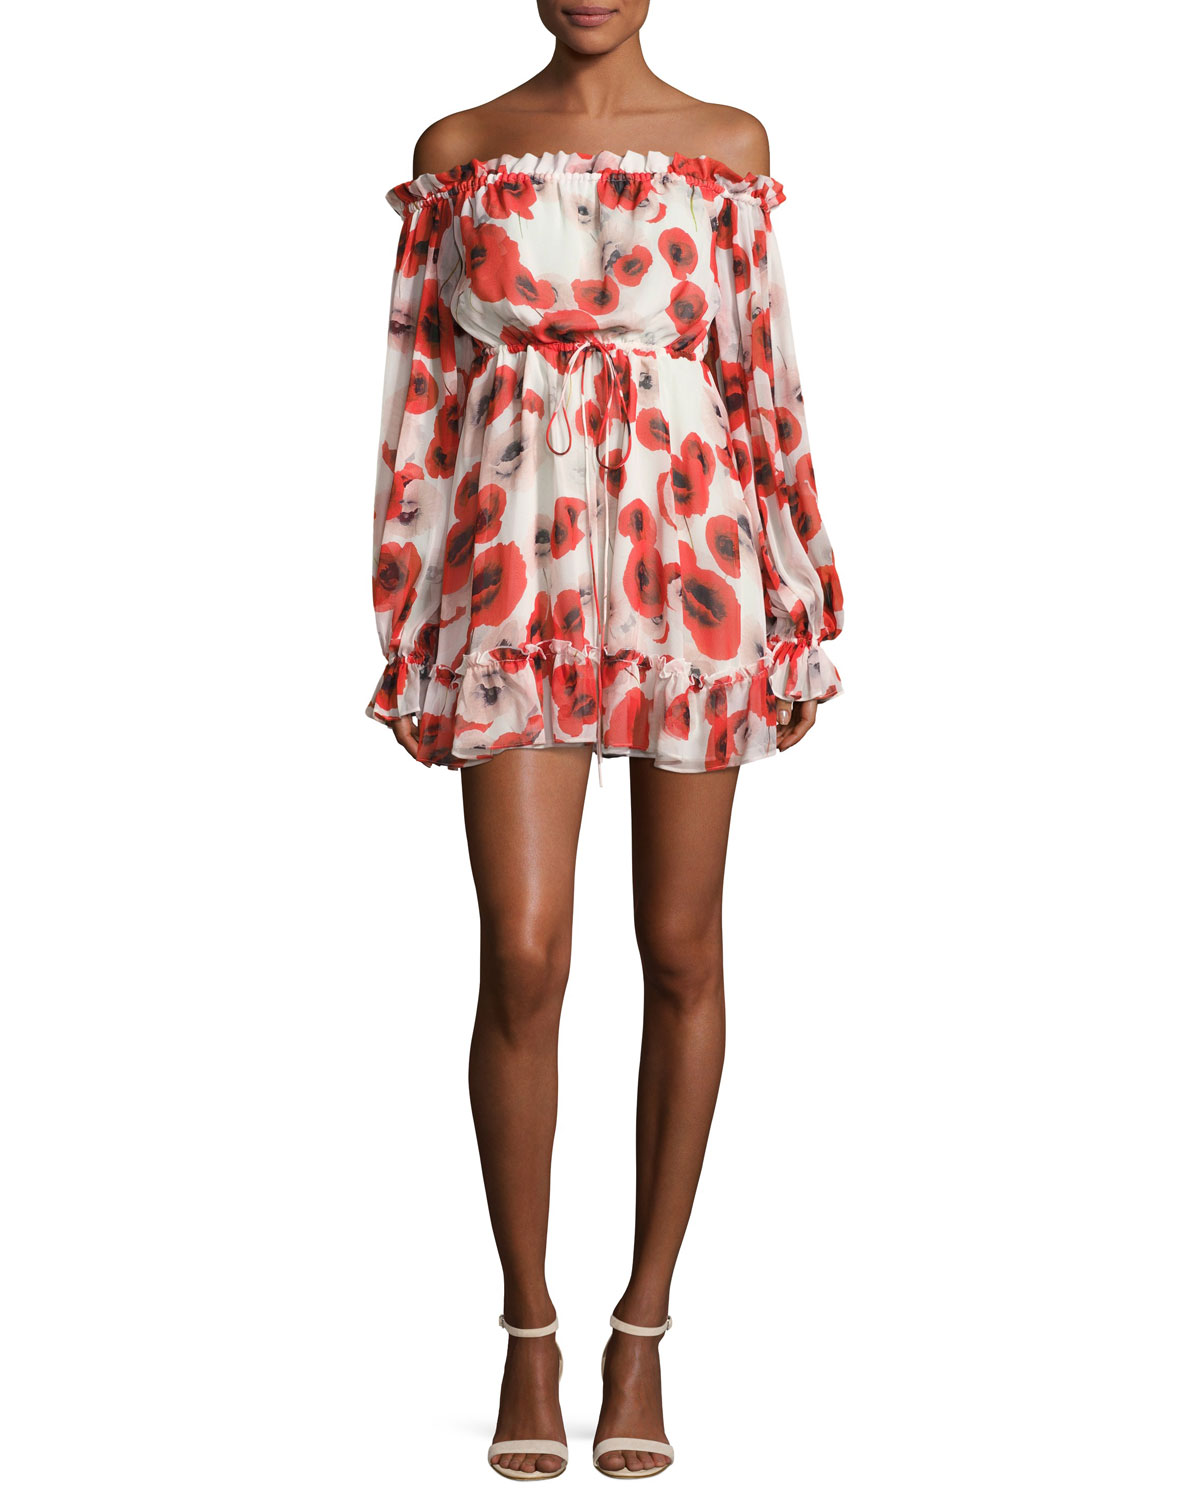 ad1248ed07a9 NICHOLAS Poppy Floral Off-the-Shoulder Silk Mini Dress